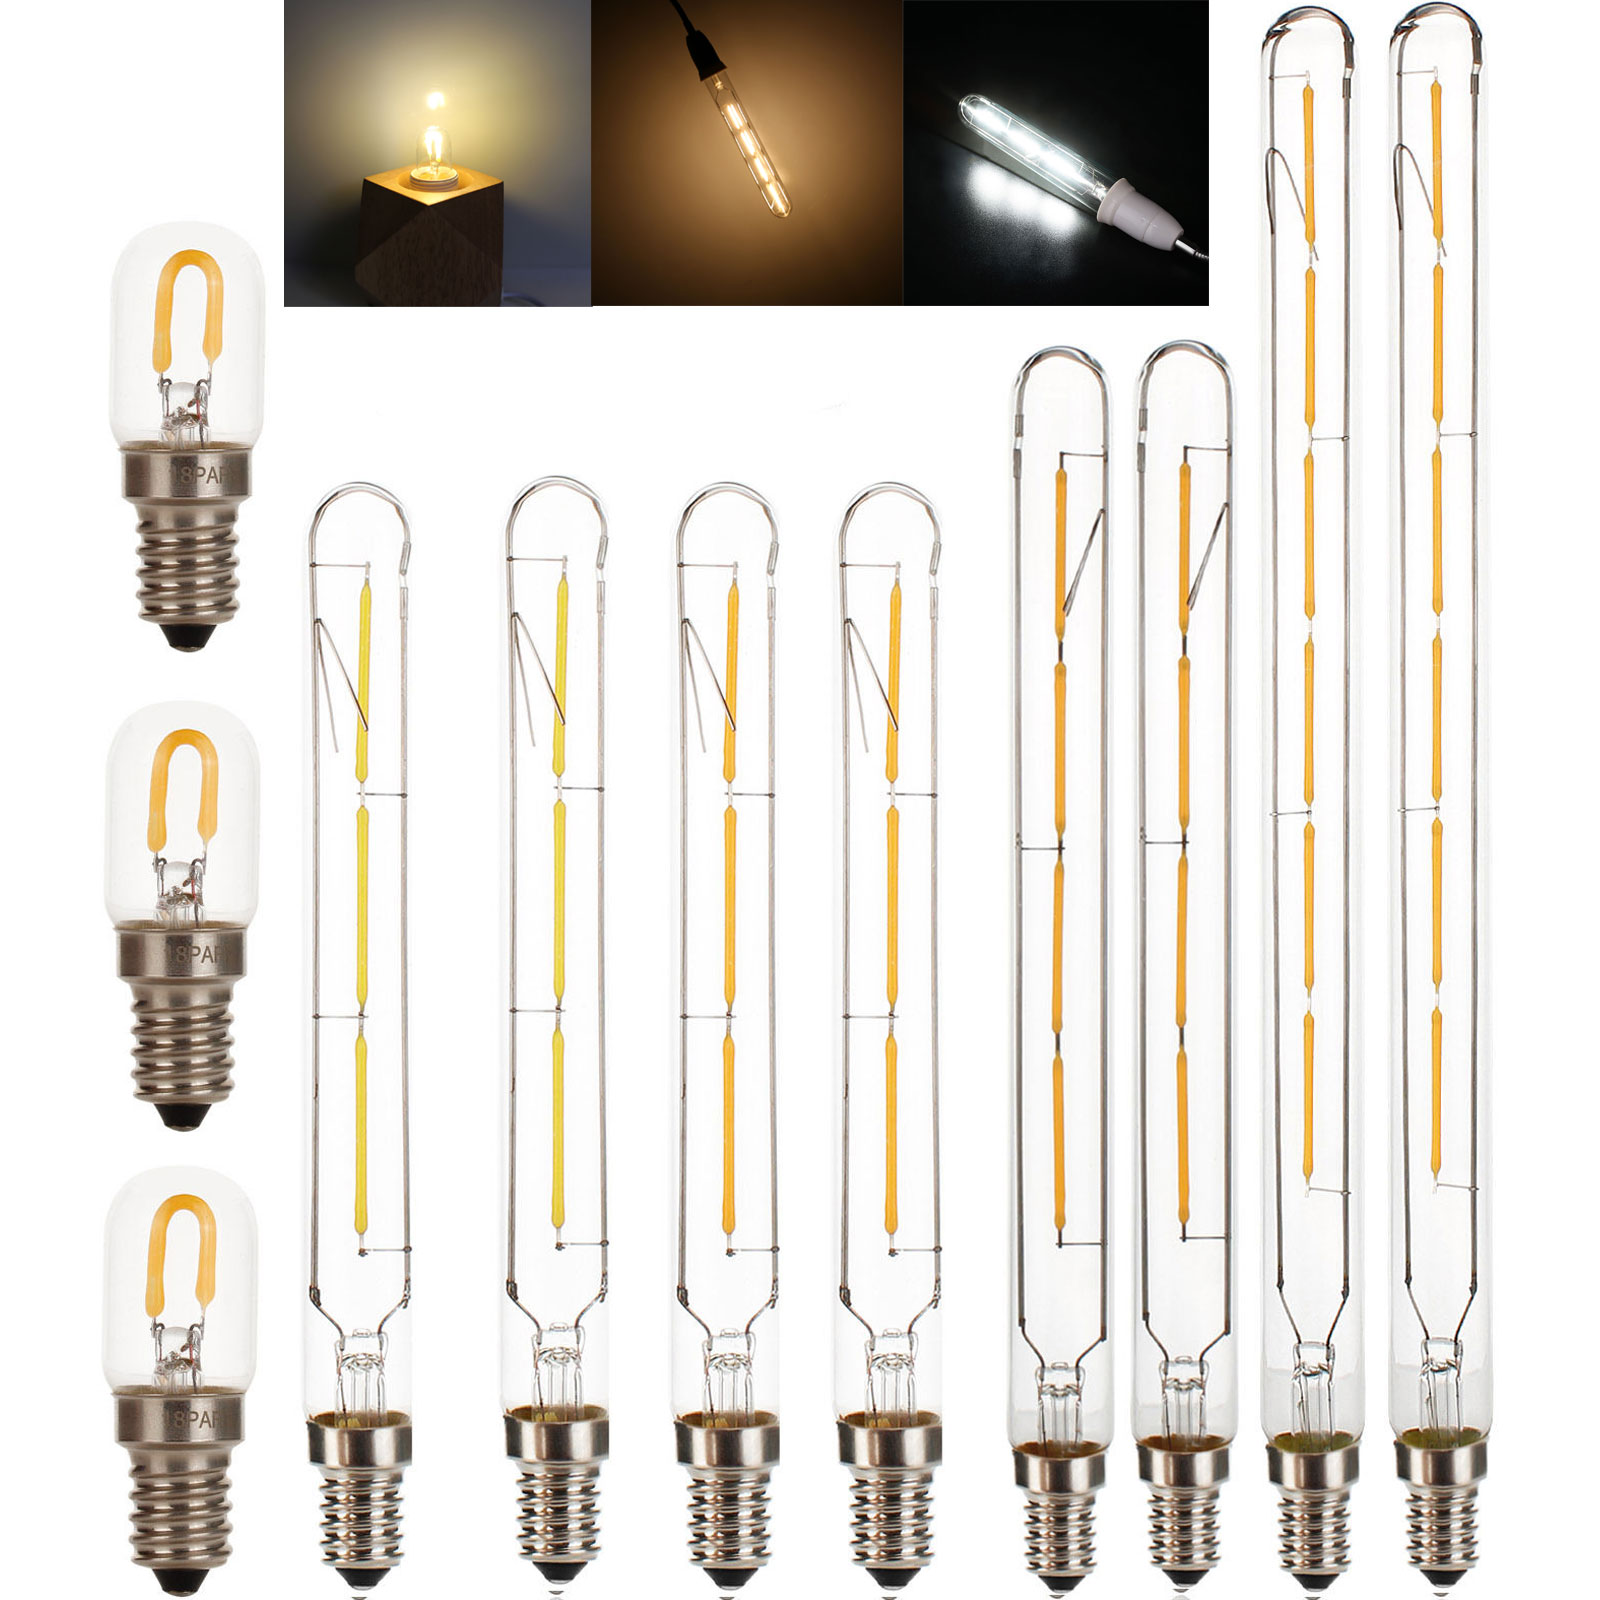 <font><b>T20</b></font> E14 <font><b>lampada</b></font> <font><b>led</b></font> retro edison filament light 220v 240v 230v <font><b>LED</b></font> lamp incandescent bulb Novelty Lights Home Decor 2700K Warm image